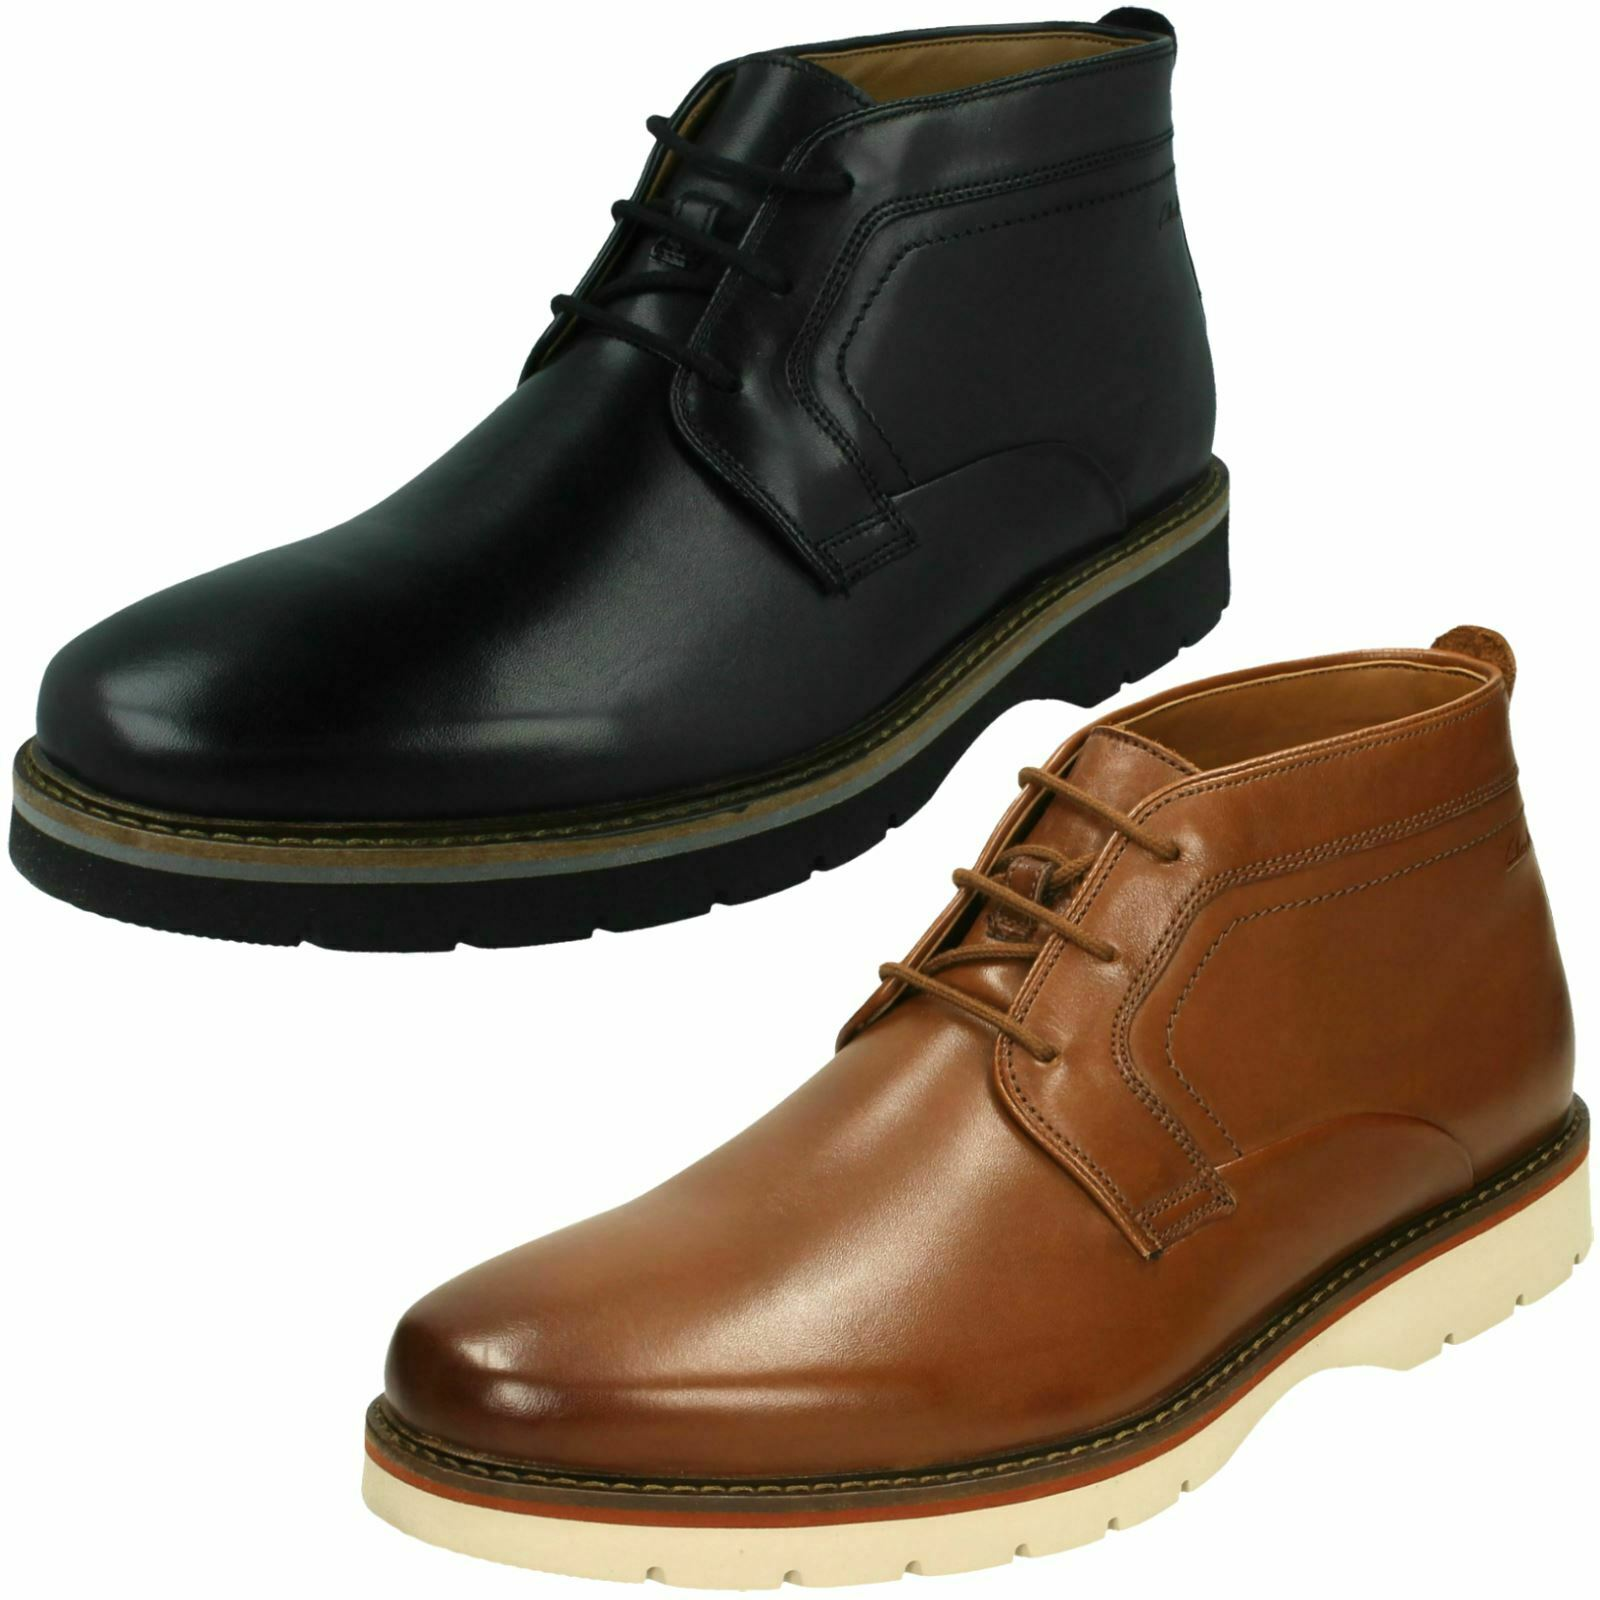 Clarks Mens Casual Ankle Boots - Bayhill Mid